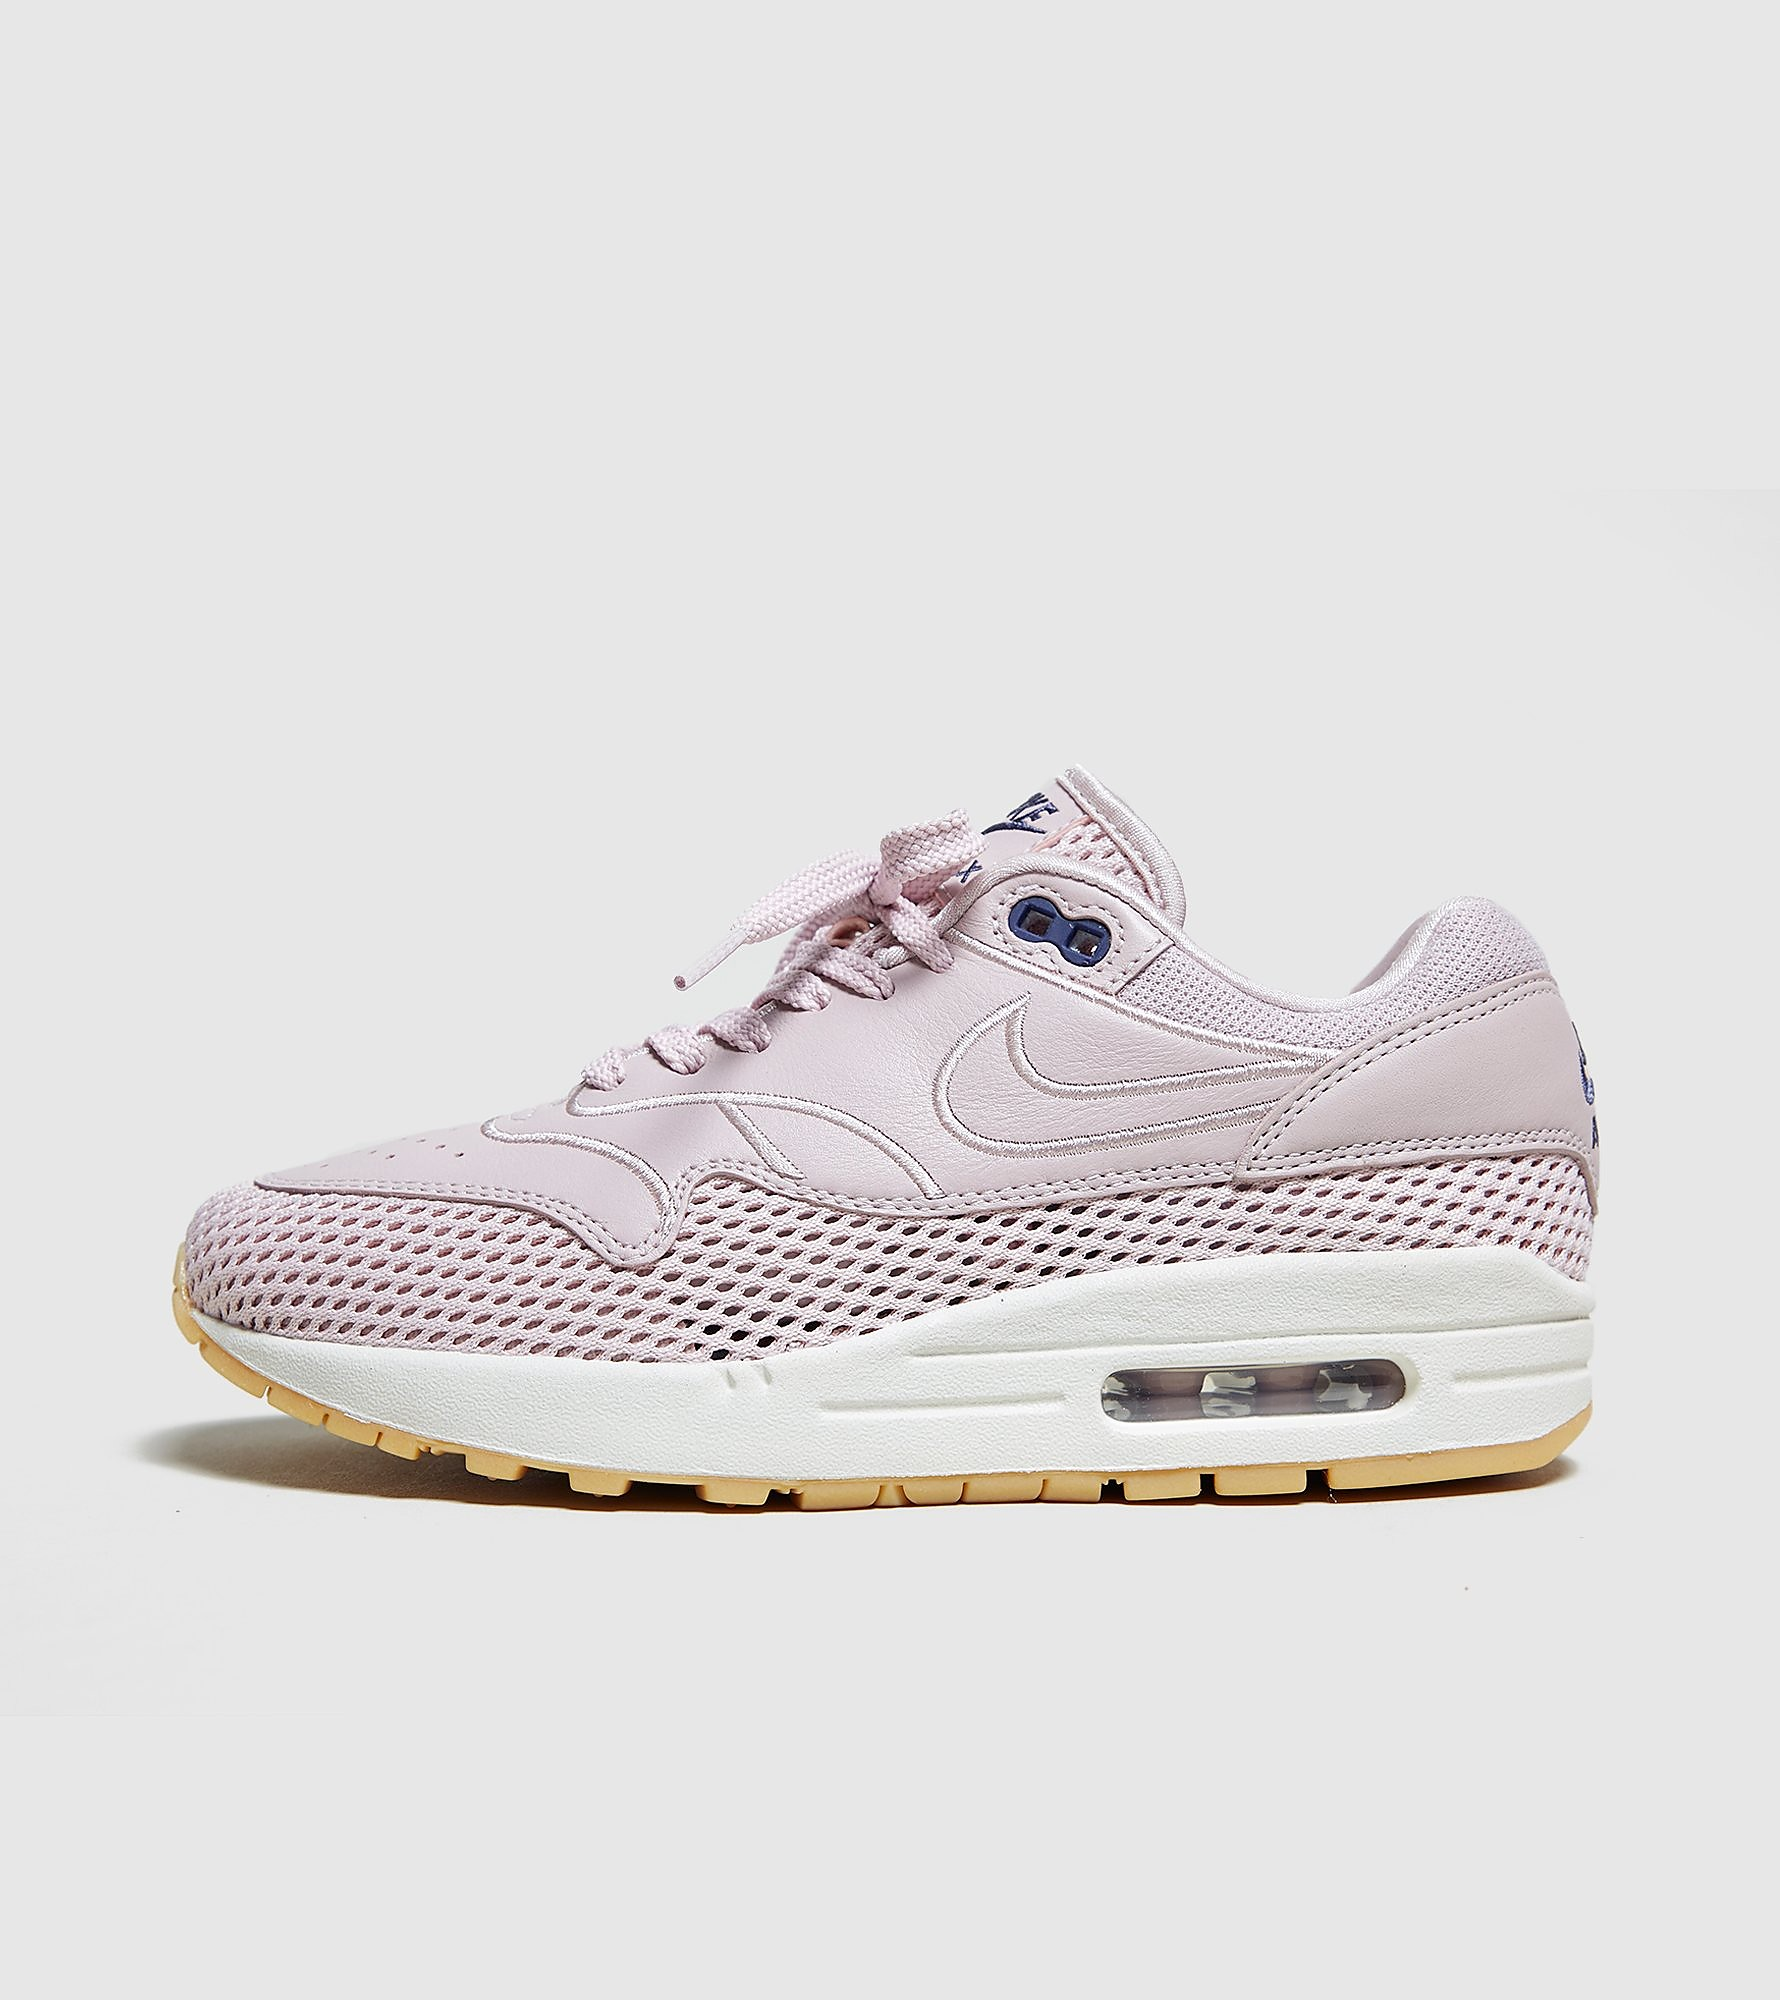 Nike Air Max 1 Breathe Women's